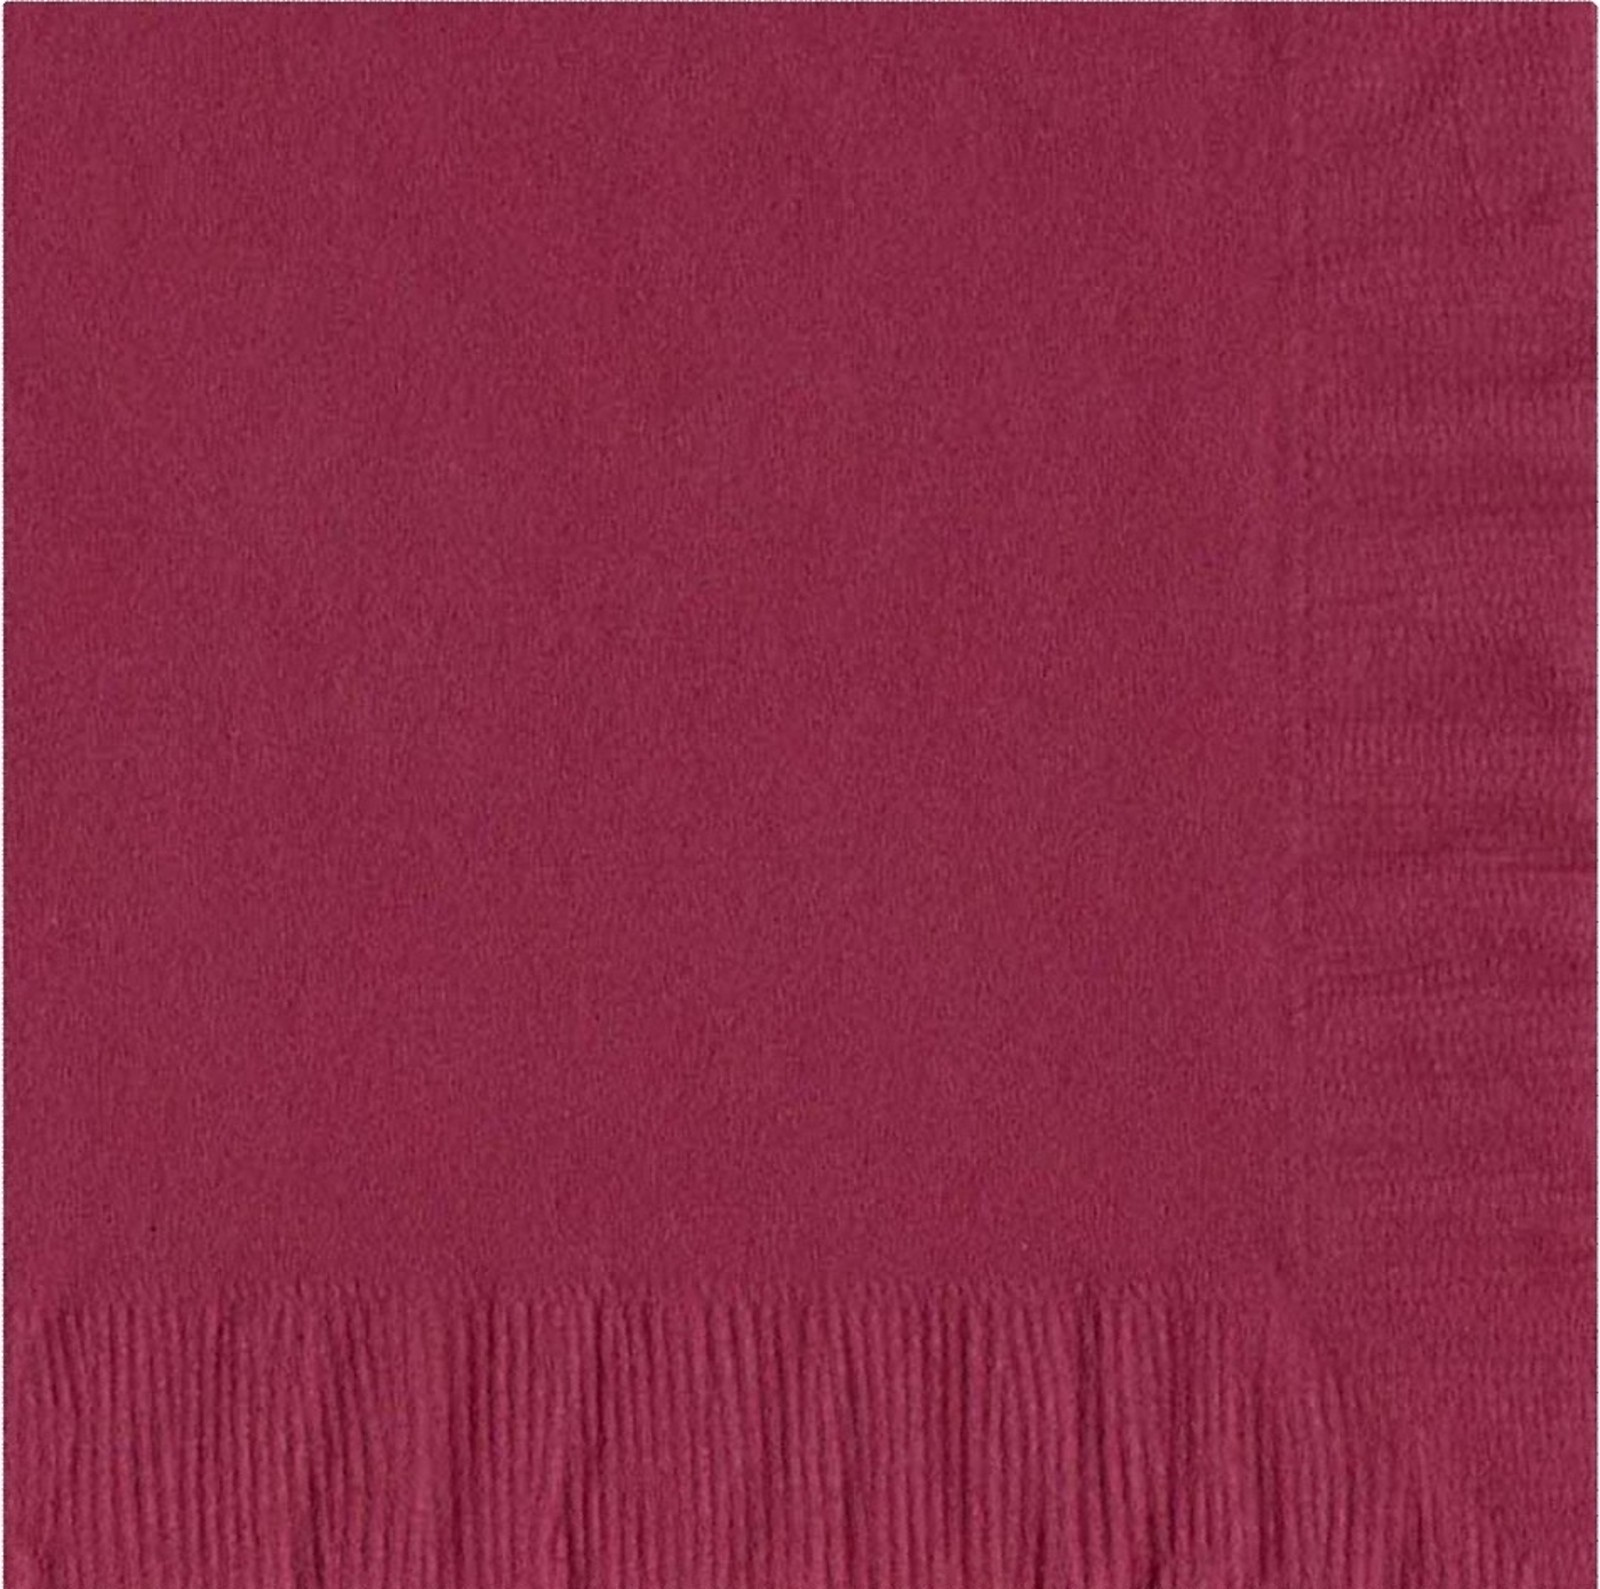 50 Plain Solid Colors Luncheon Dinner Napkins Paper - Burgundy